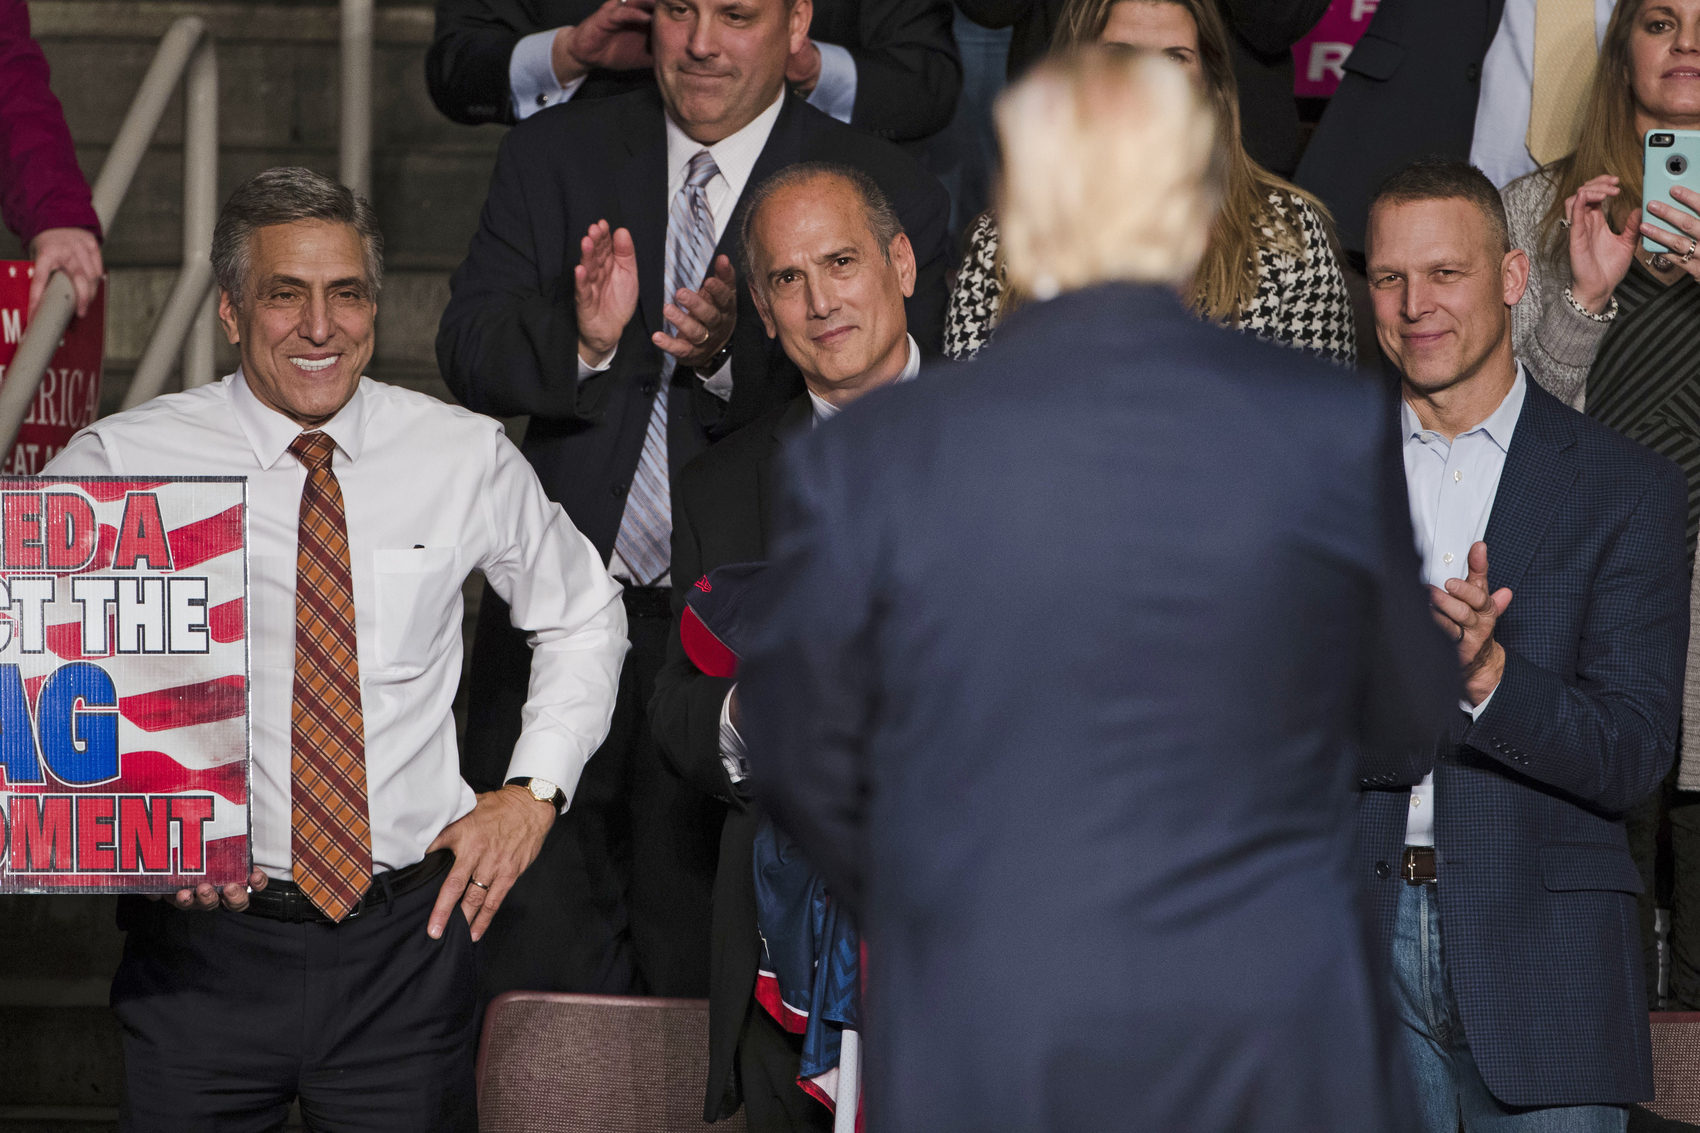 FILE - In this Dec. 15, 2016, file photo, U.S. Rep. Lou Barletta, R-Pa., left, U.S. Rep. Tom Marino, R-Pa., center left, and U.S. Rep. Scott Perry, R-Pa., right, watch as President-elect Donald Trump, center right, departs a rally in Hershey, Pa. The Democratic-controlled Pennsylvania Supreme Court struck down the state's congressional map in a 4-3 decision Monday, Jan. 22, 2018, granting a major victory to Democrats who charged that the 18 districts were unconstitutionally gerrymandered to benefit Republicans. (AP Photo/Matt Rourke, File)